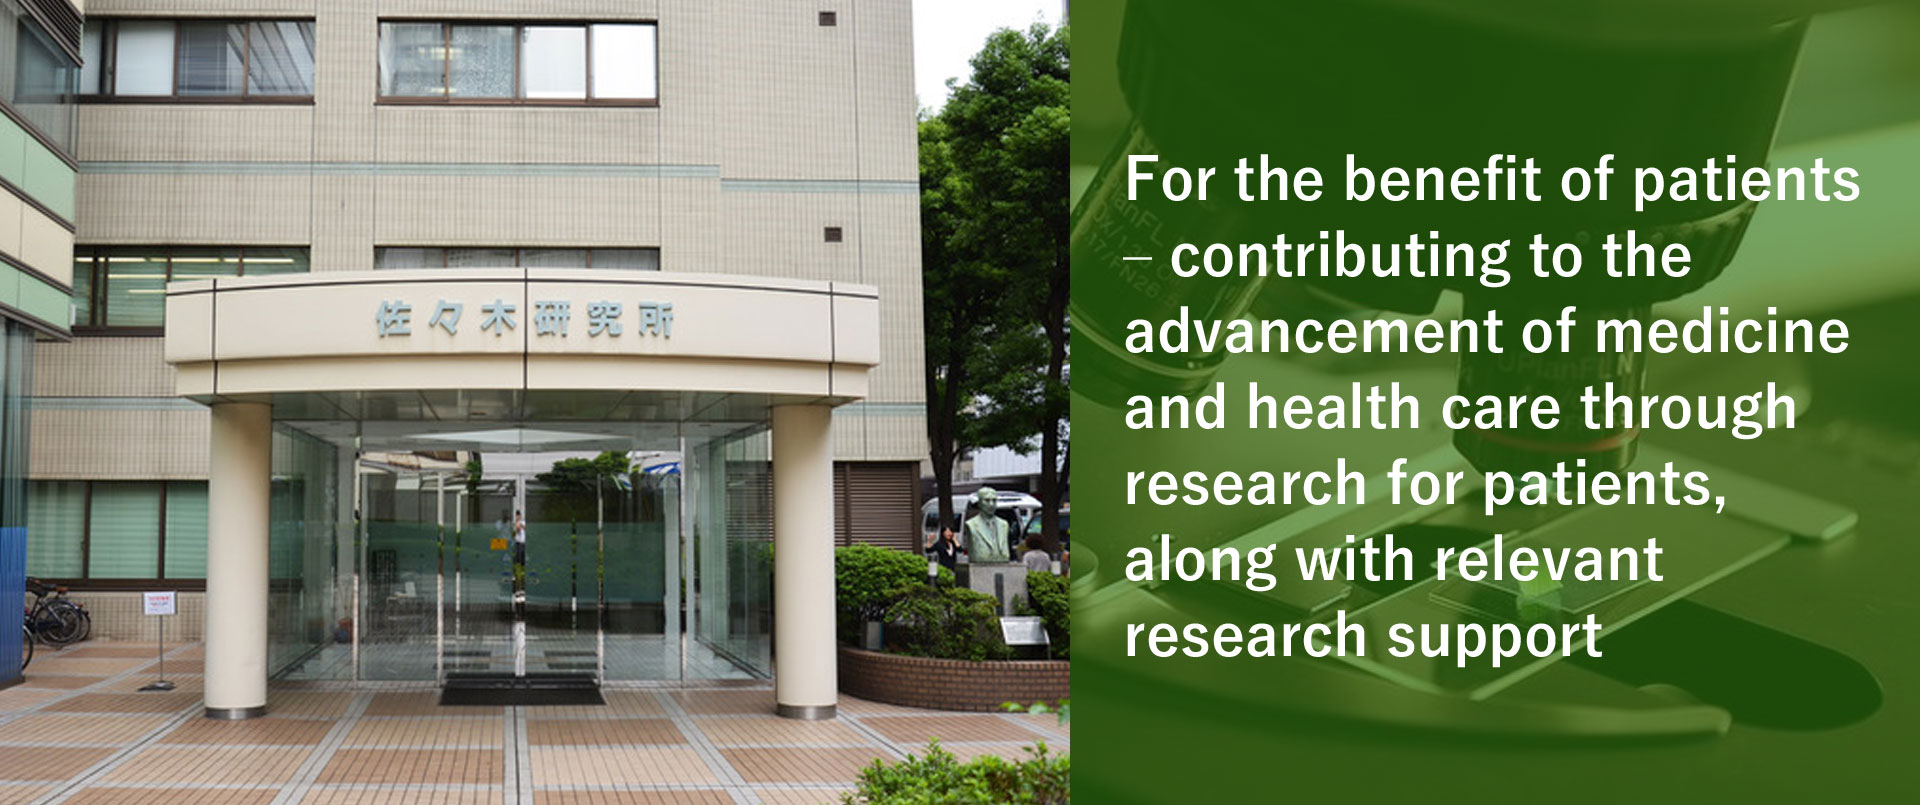 In the interest of patients – contributing to the advancement of medicine and health care through research for patients, along with relevant research support